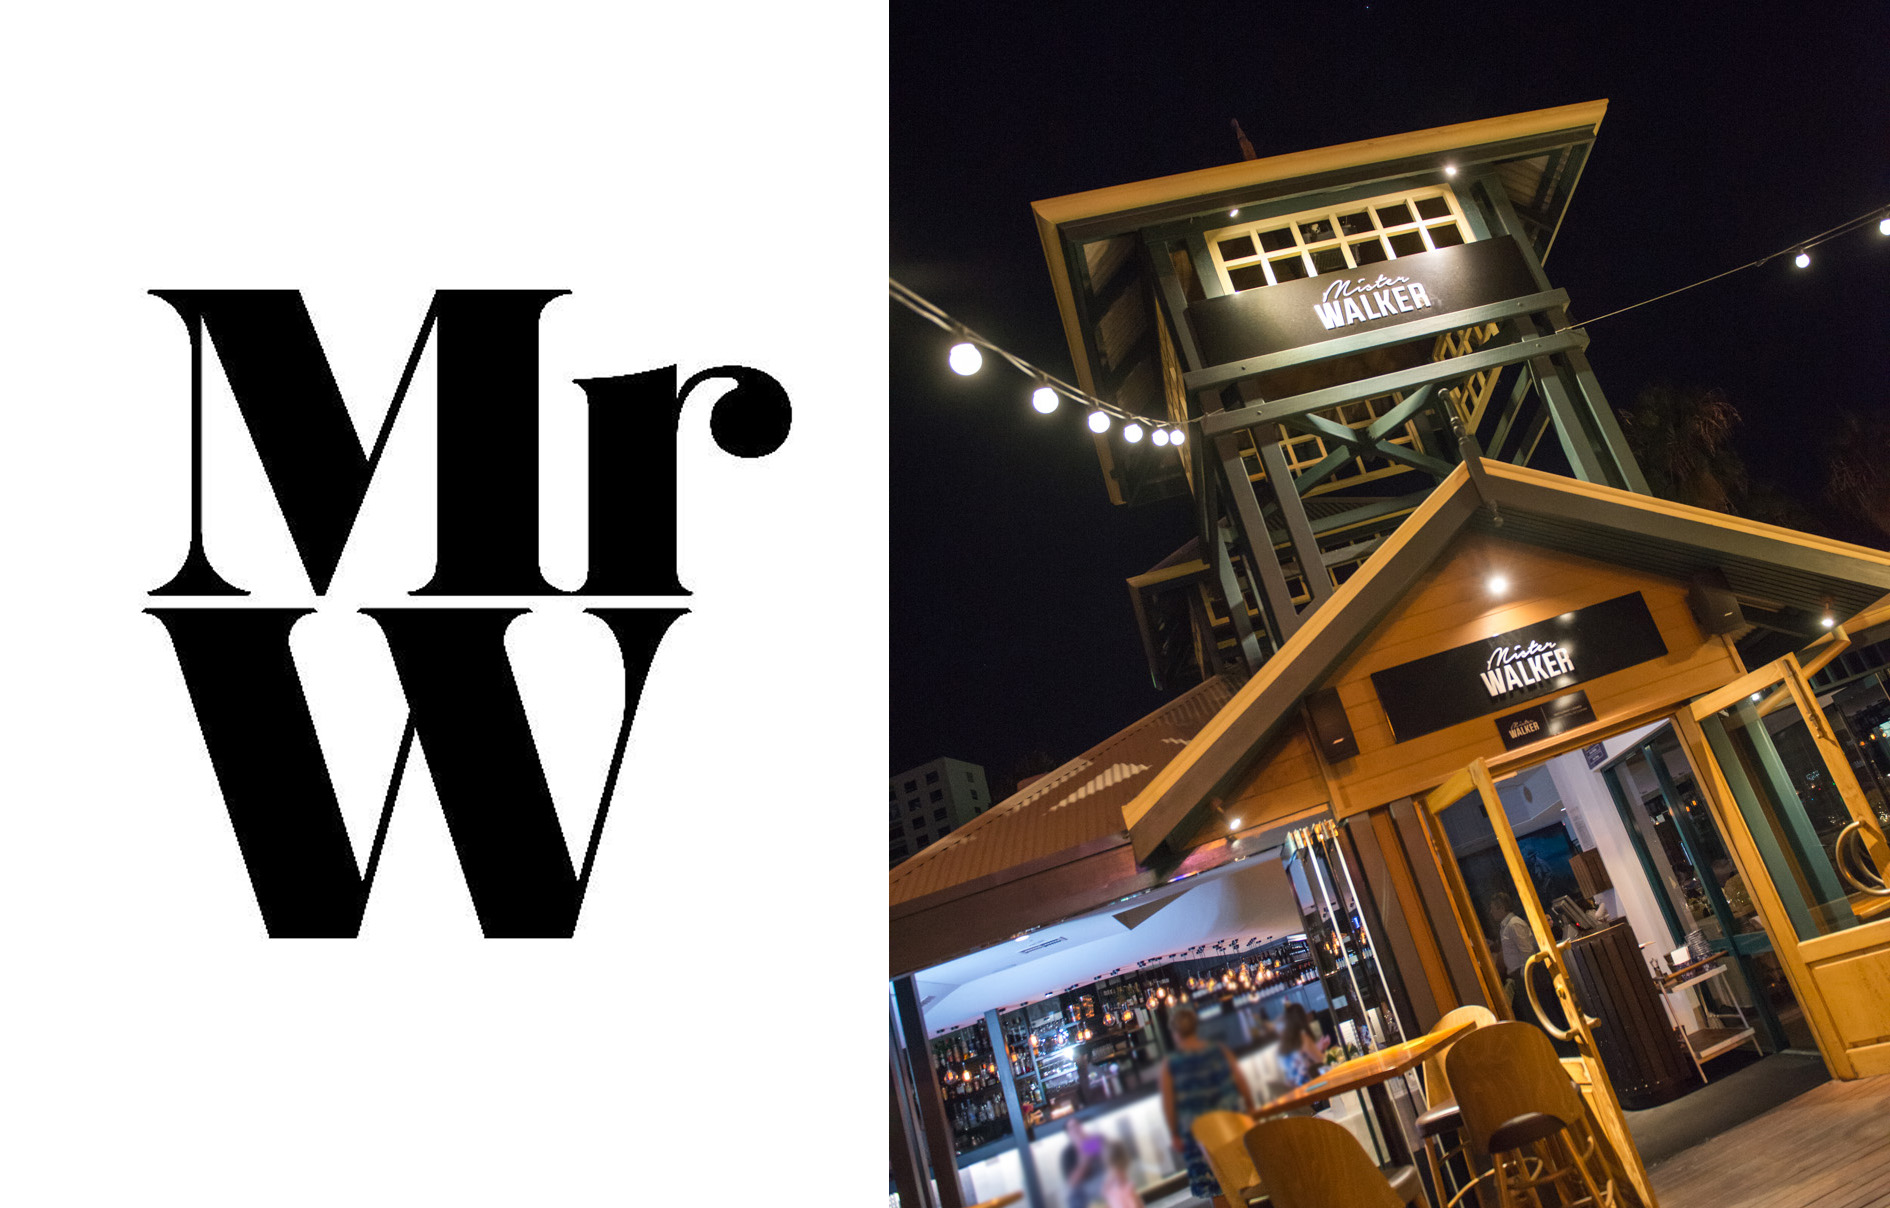 Looking for an inner city location right on the water and have an intimate selection of guests? Good food, good wine and well run establishment.